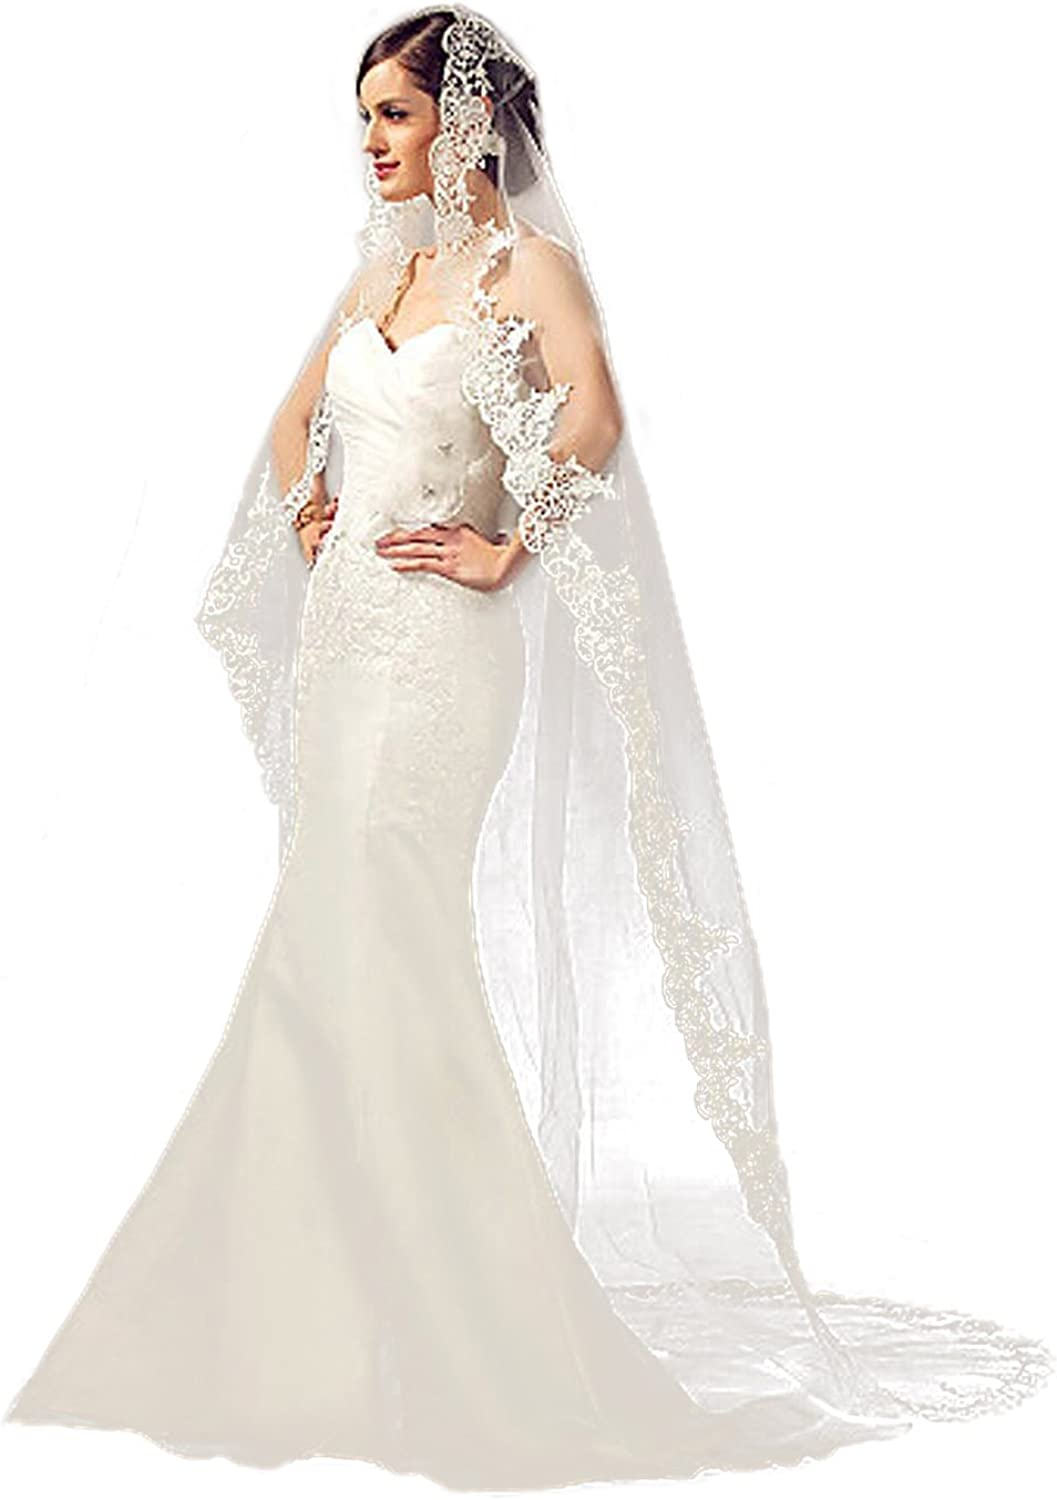 Barogirl Lace Wedding Veil Cathedral Length Ivory Bridal Veil with Comb, Ivory